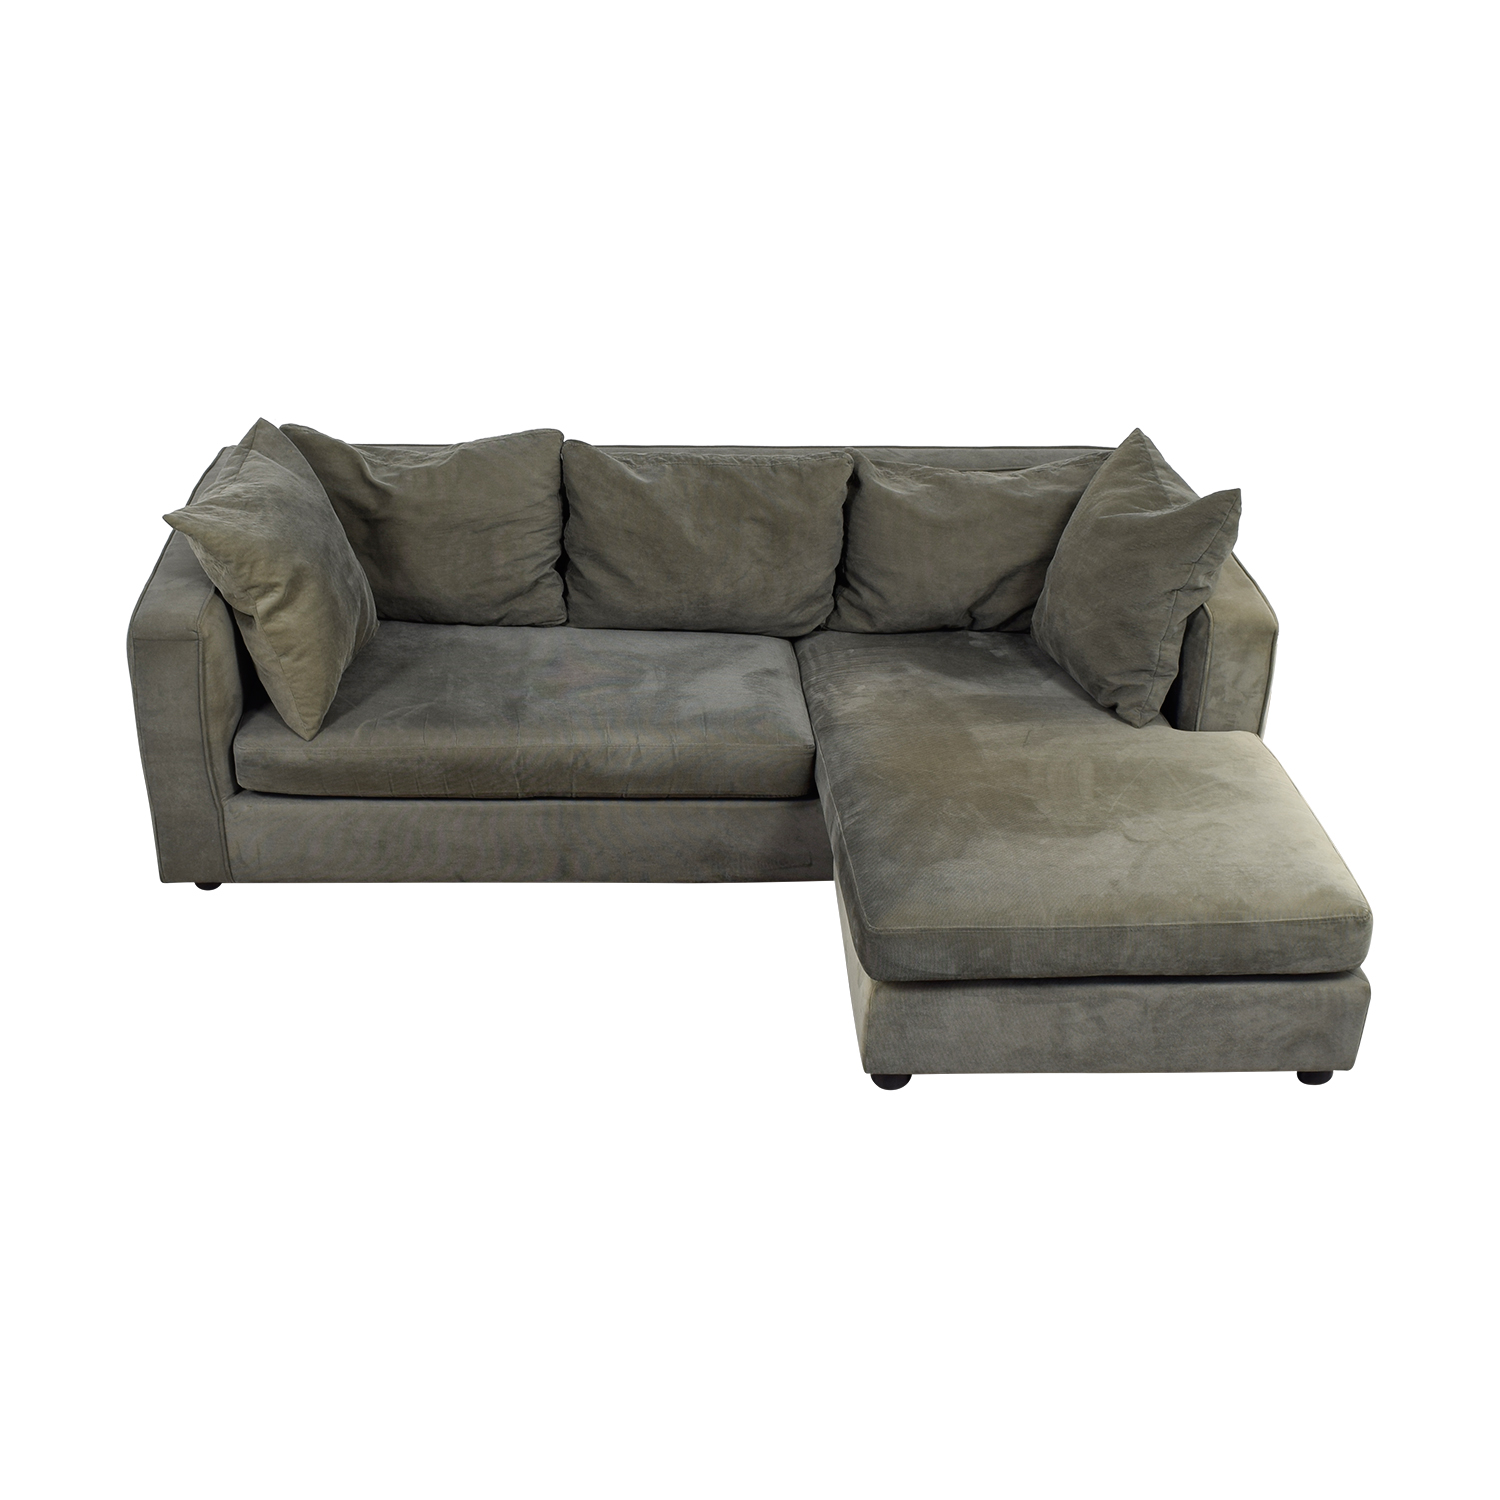 ABC Carpet & Home Grey L- Shaped Couch / Sofas